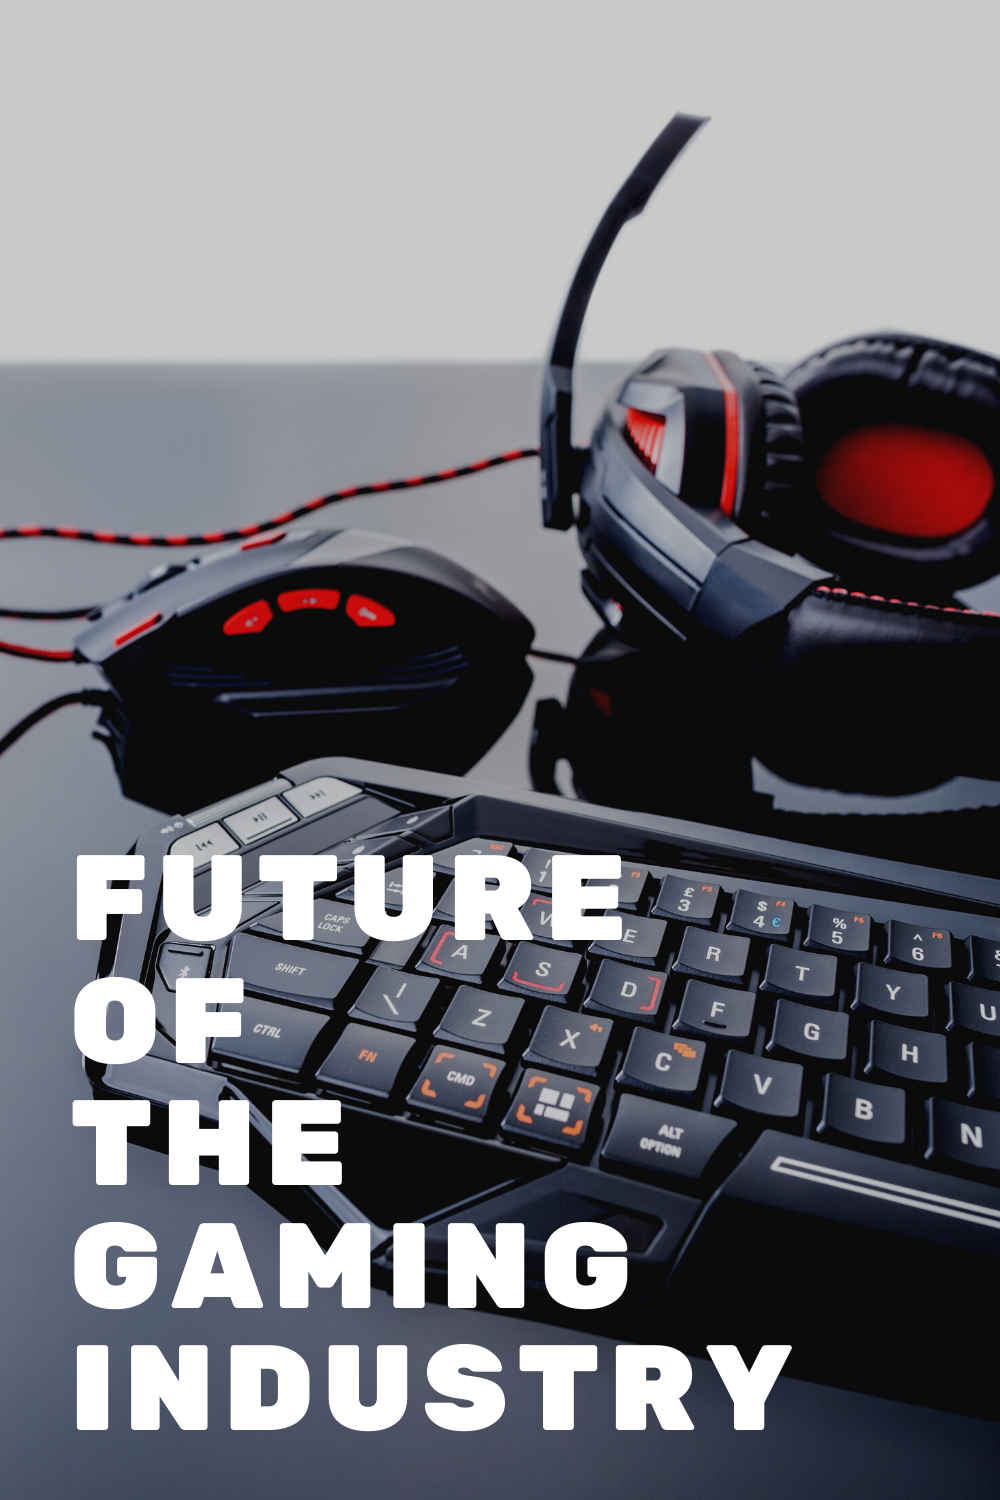 The Future of Gaming Industry and Its State